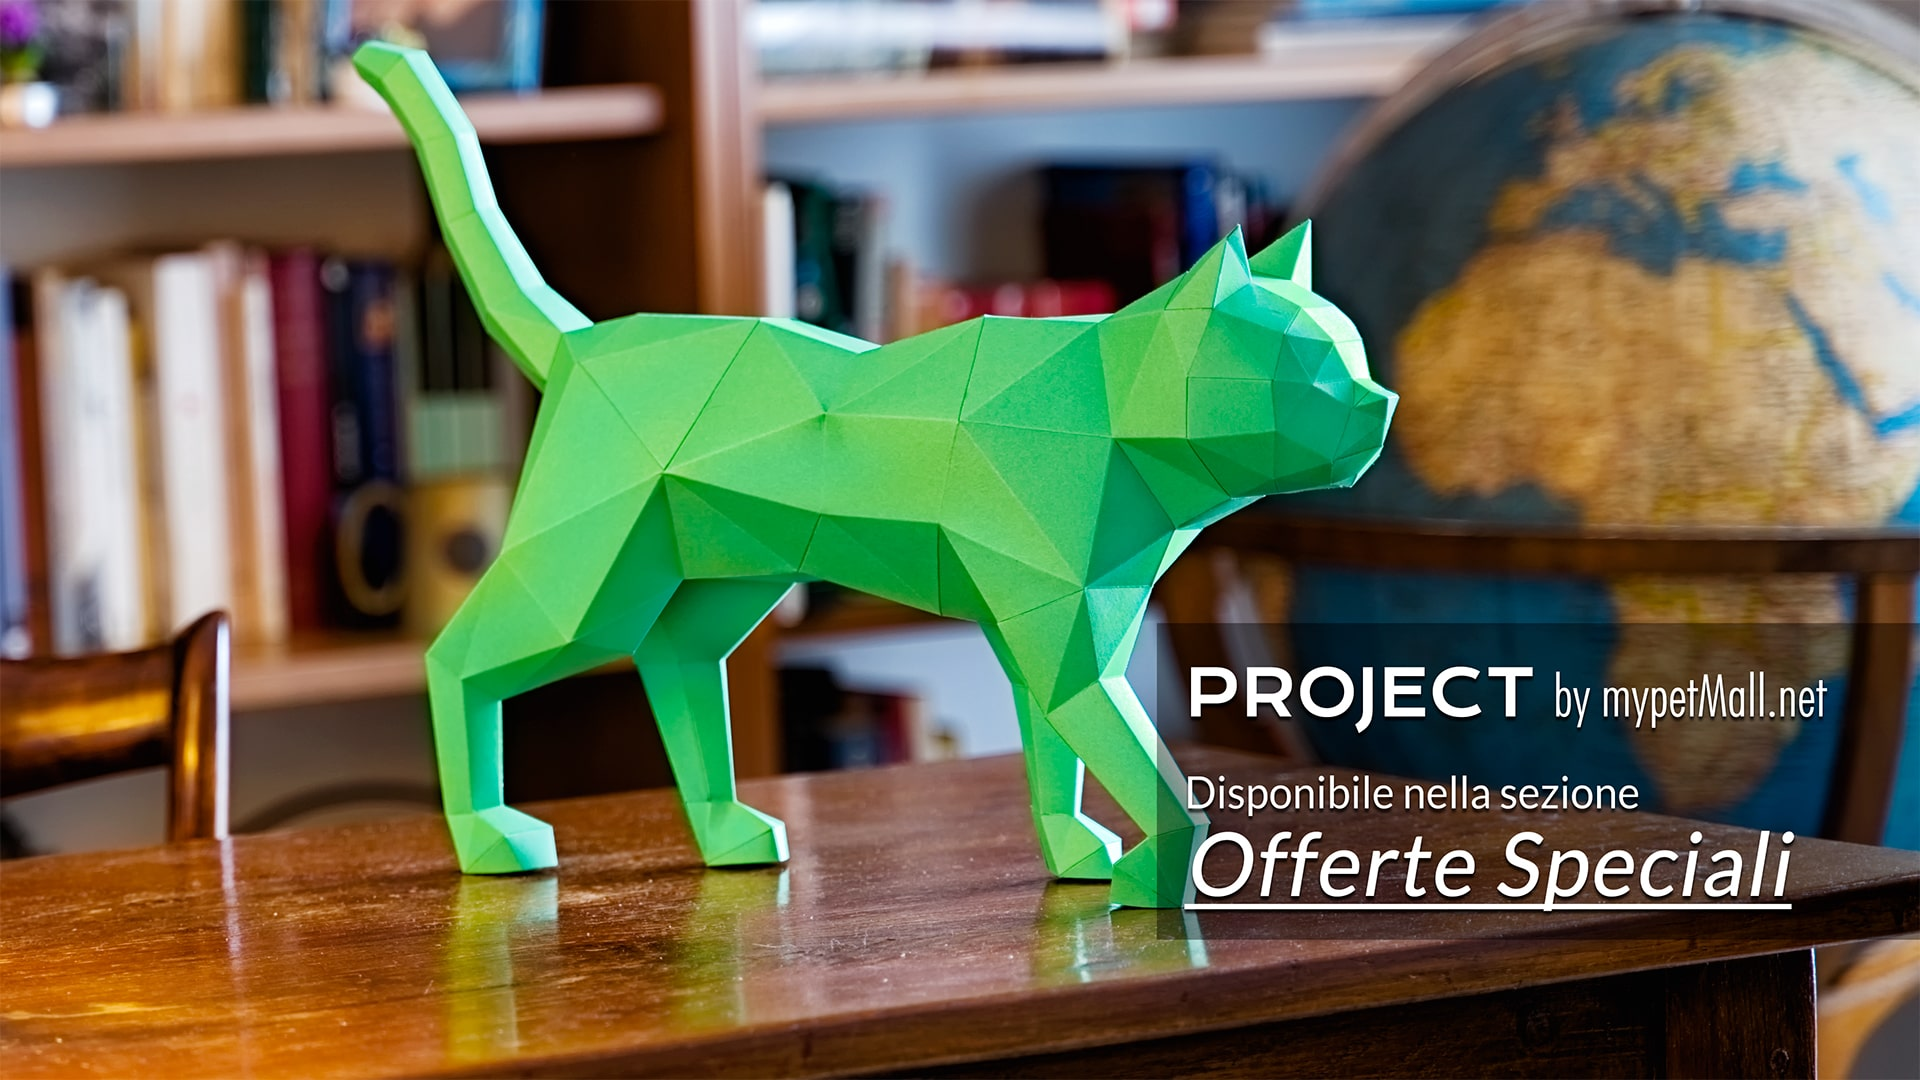 PROJECT by mypetMall.net